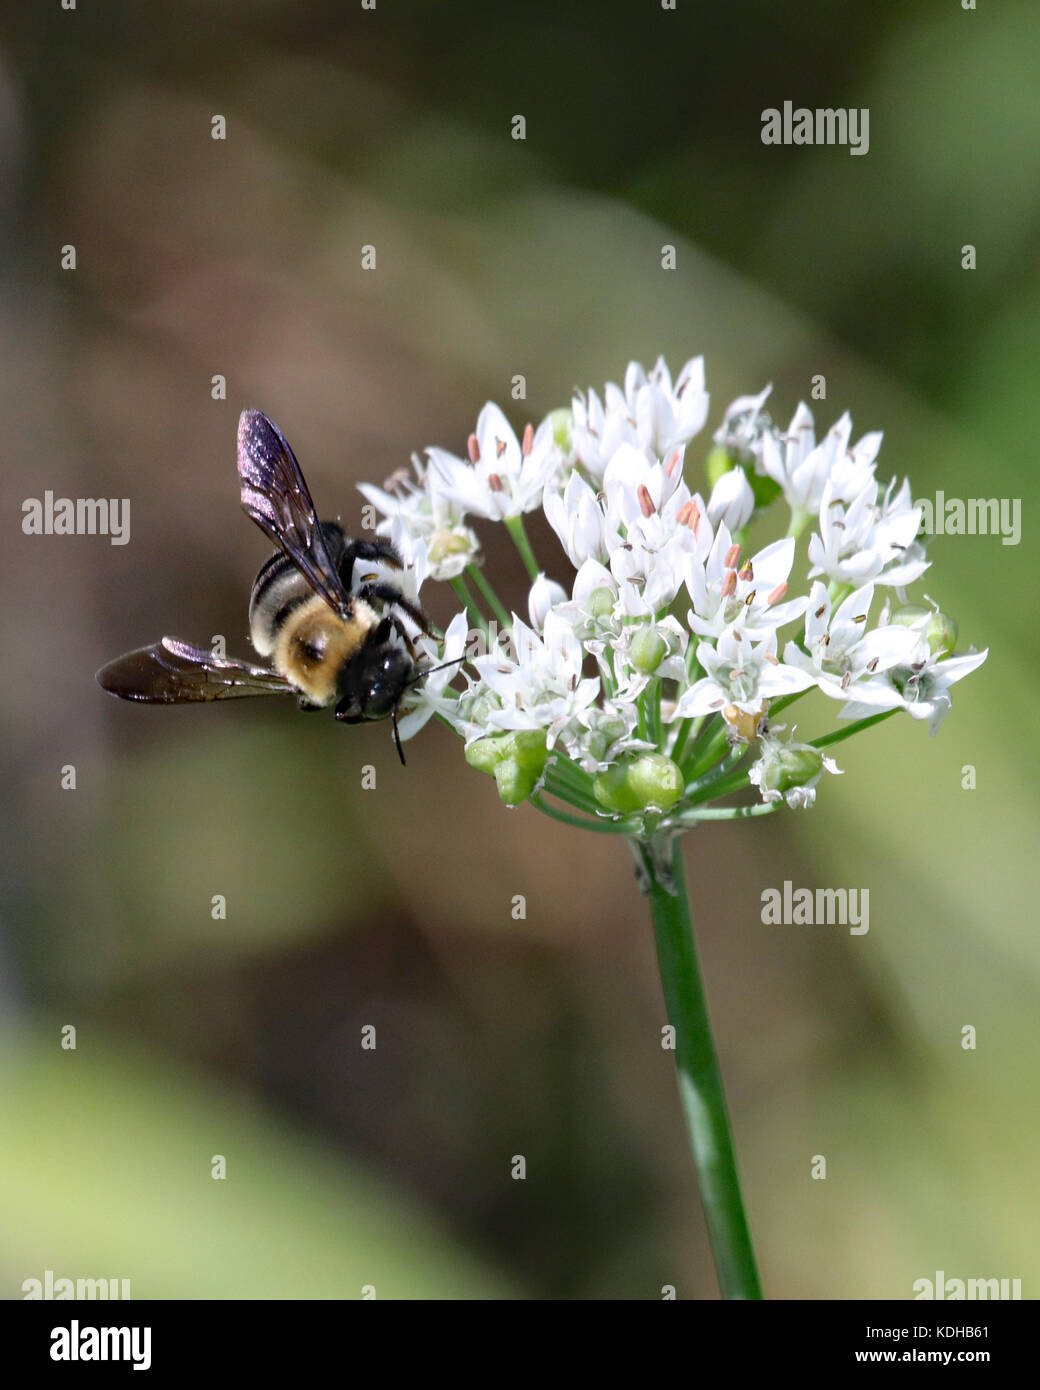 Bumble bees love the pretty white flower clusters that grow on the garlic plants - Stock Image